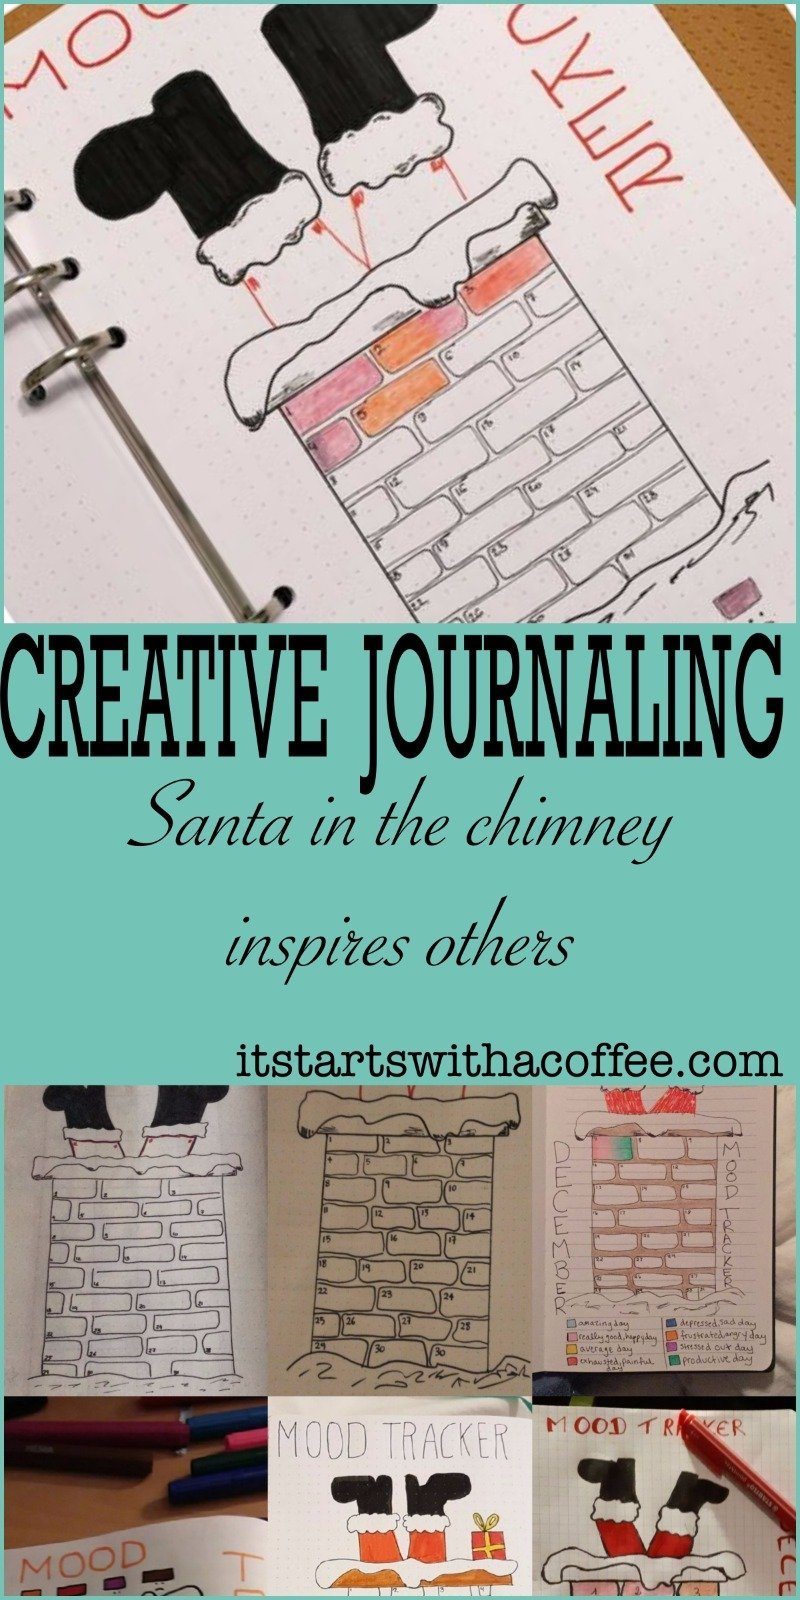 Santa in the chimney inspires others - itstartswithacoffee.com #moodtracker #chimney #santa #santaclaus #creativejournaling